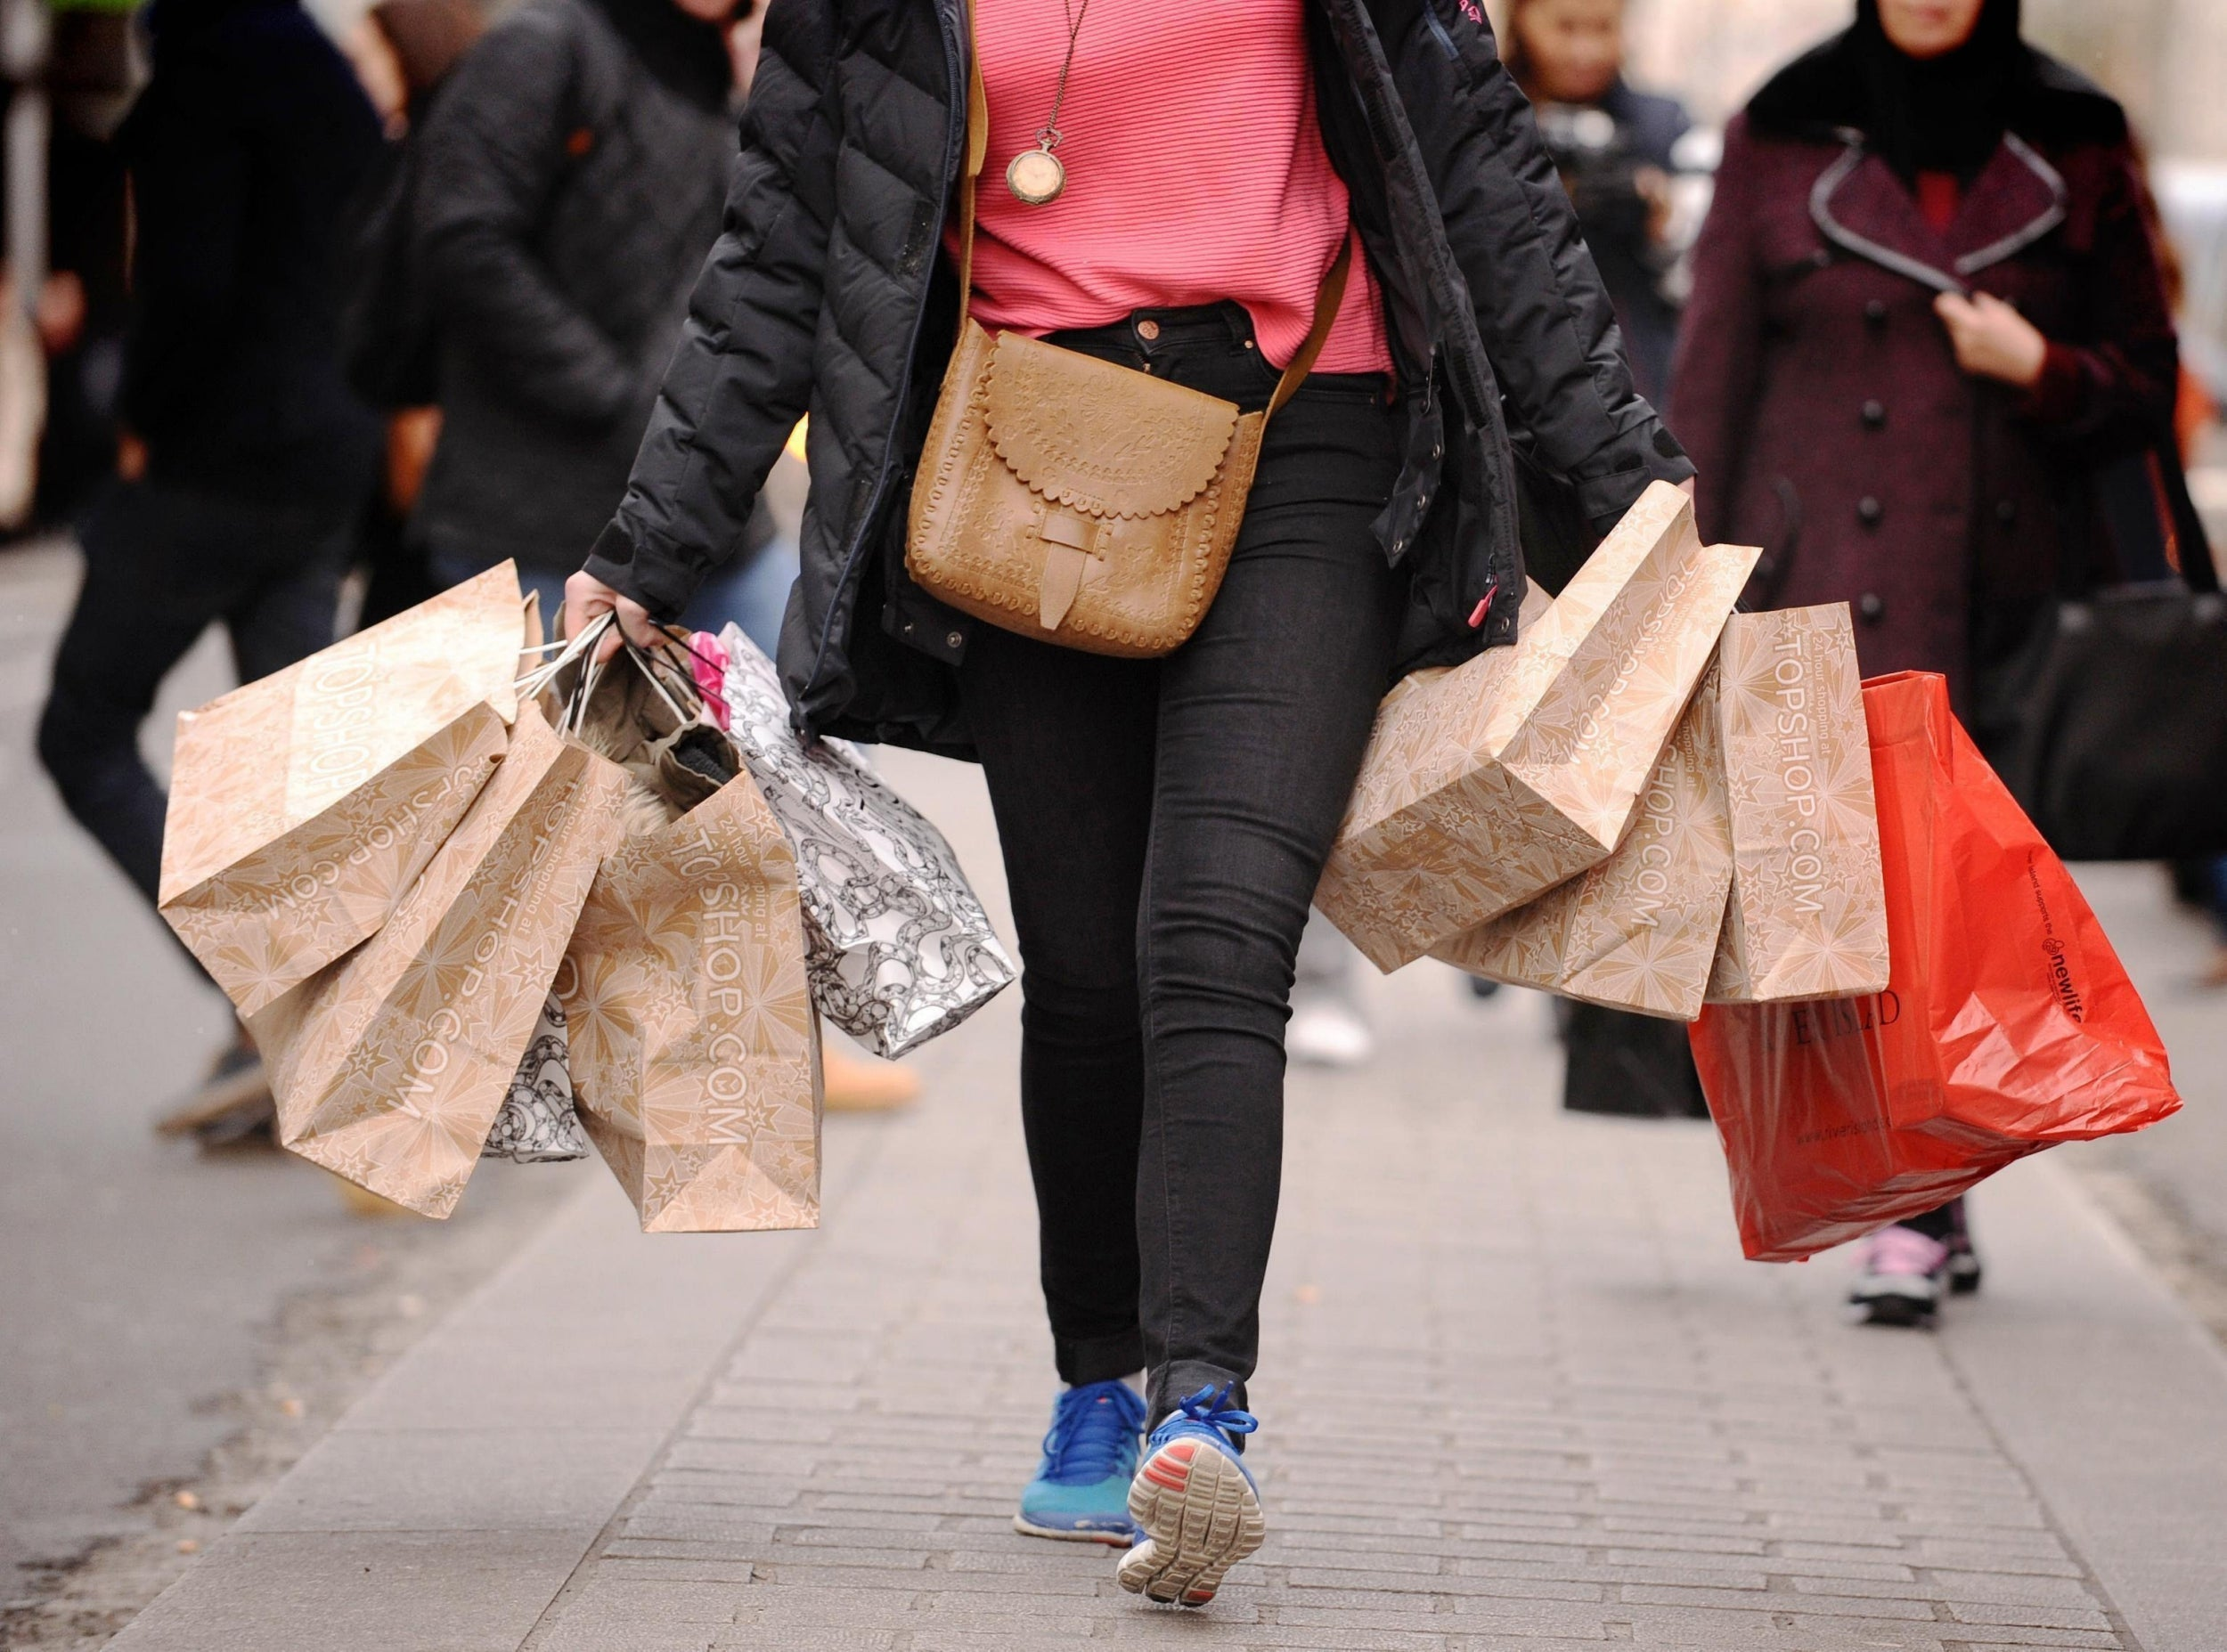 No high street shop should open on Boxing Day – what happened to spending time with family?